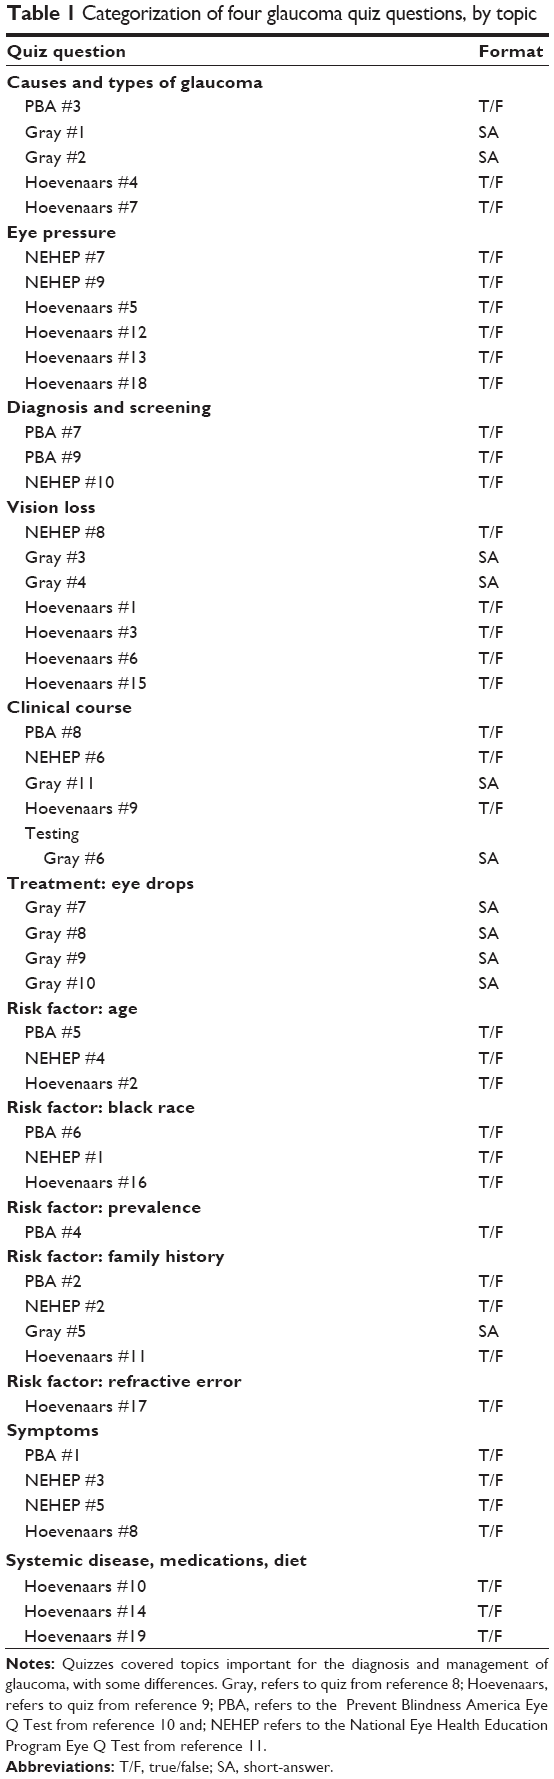 Full text] Finding the best glaucoma questionnaire: a qualitative